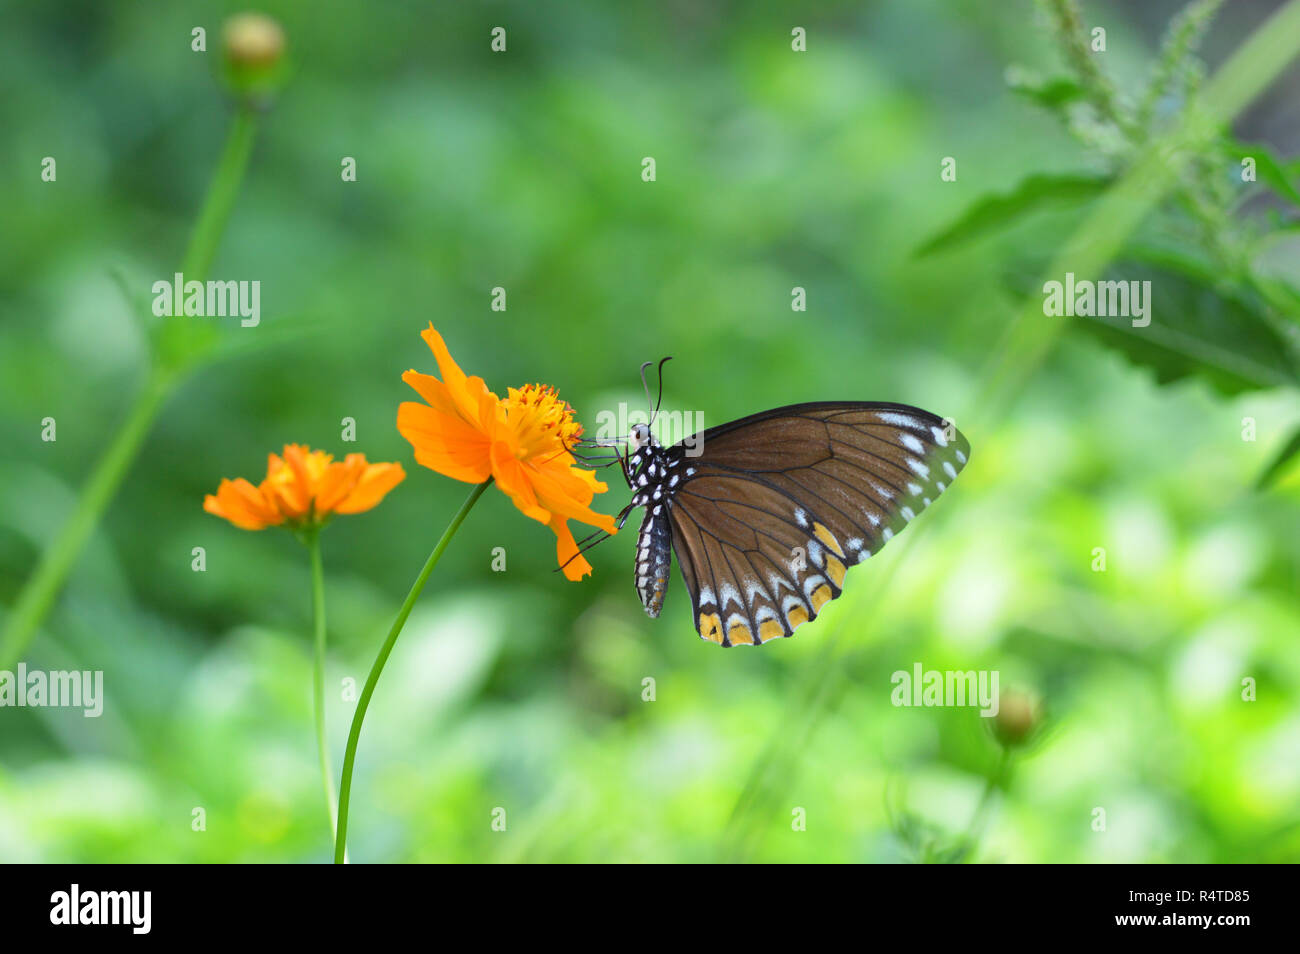 butterfly feeding on flower brown butterfly on marigold yellow flower nature green blur background on bright R4TD85